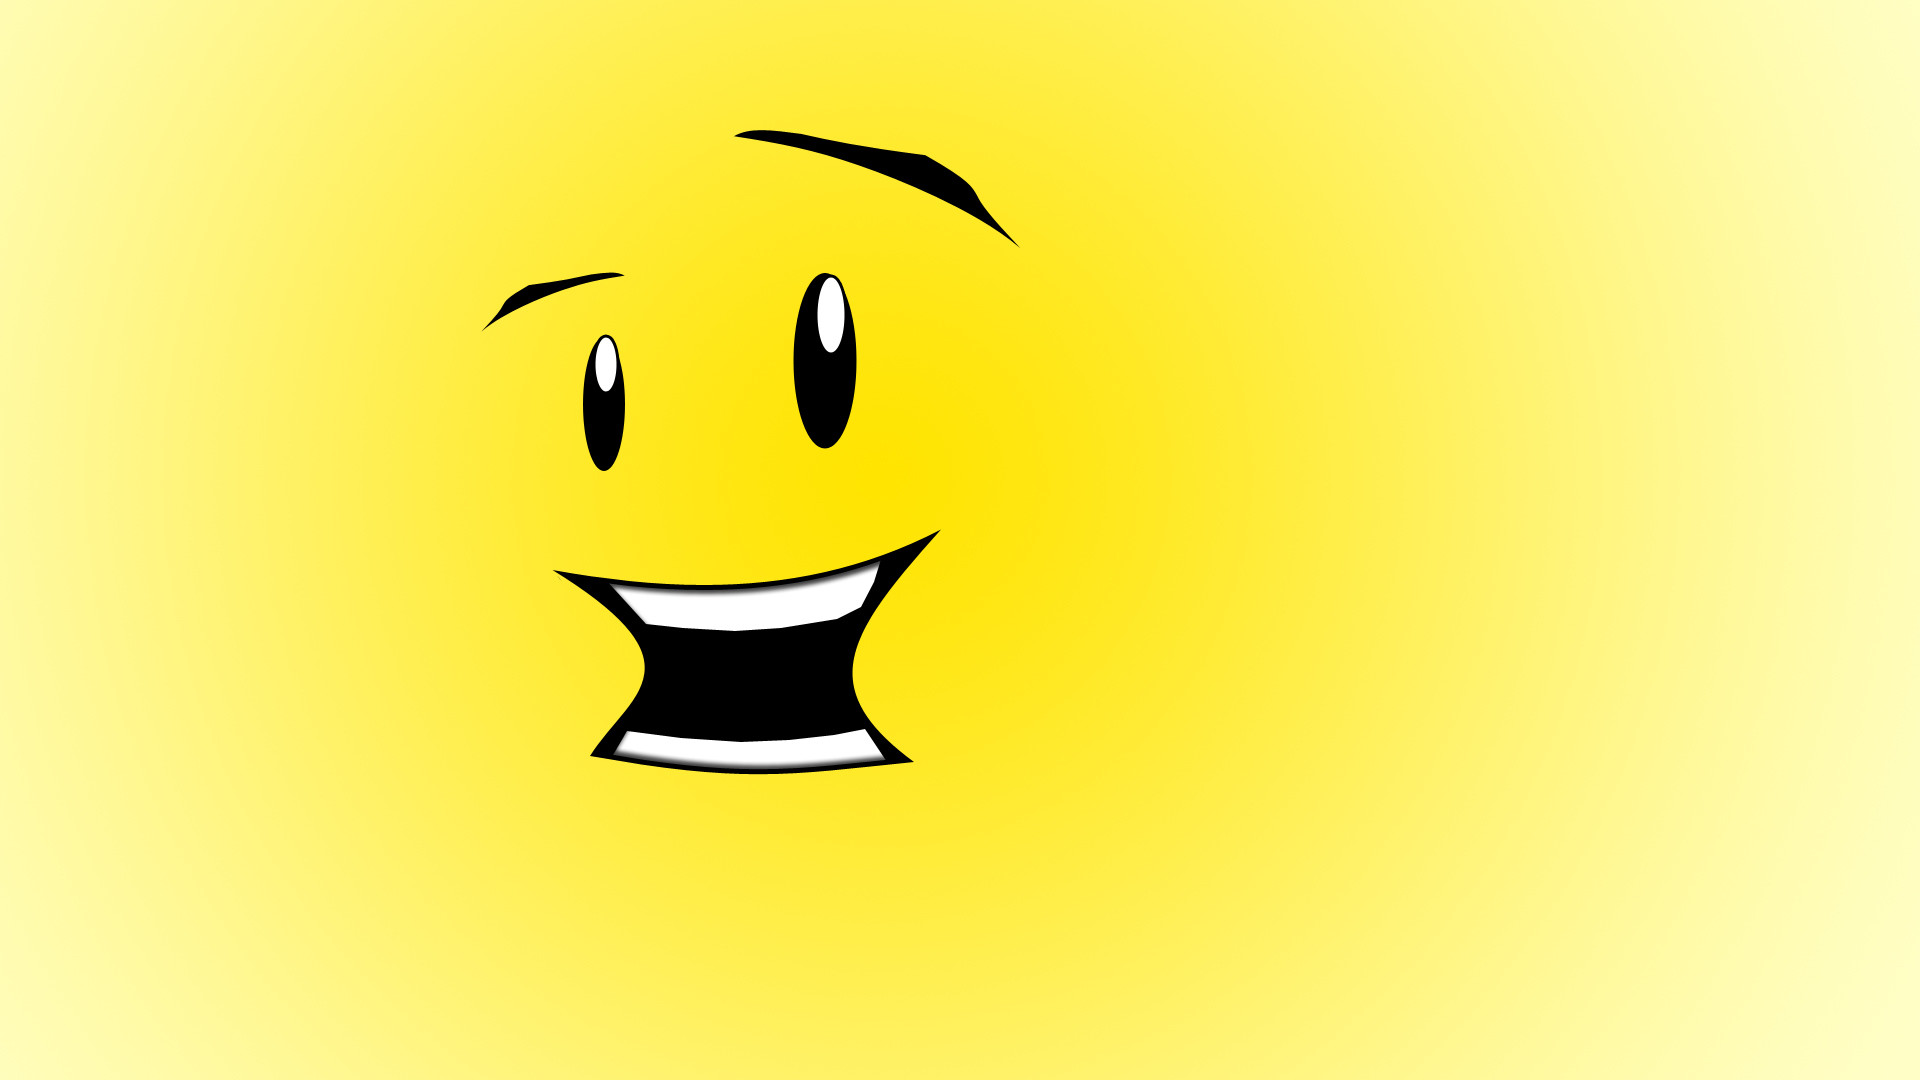 Res: 1920x1080, Smily Face 3d - Clipart library